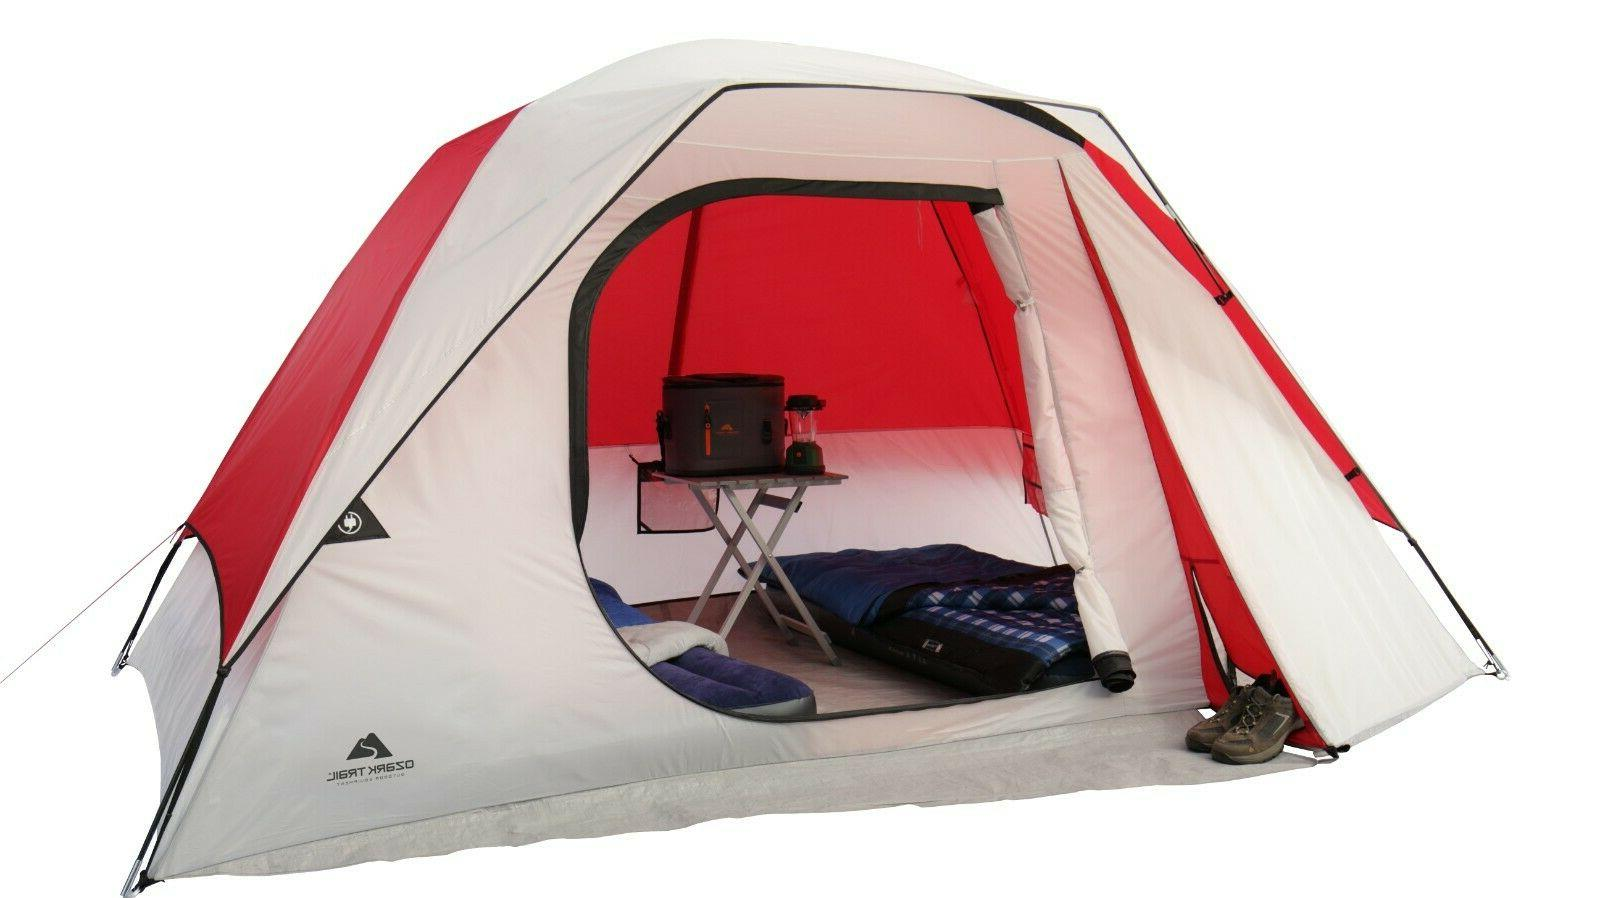 dome camping tent 6 person large storage